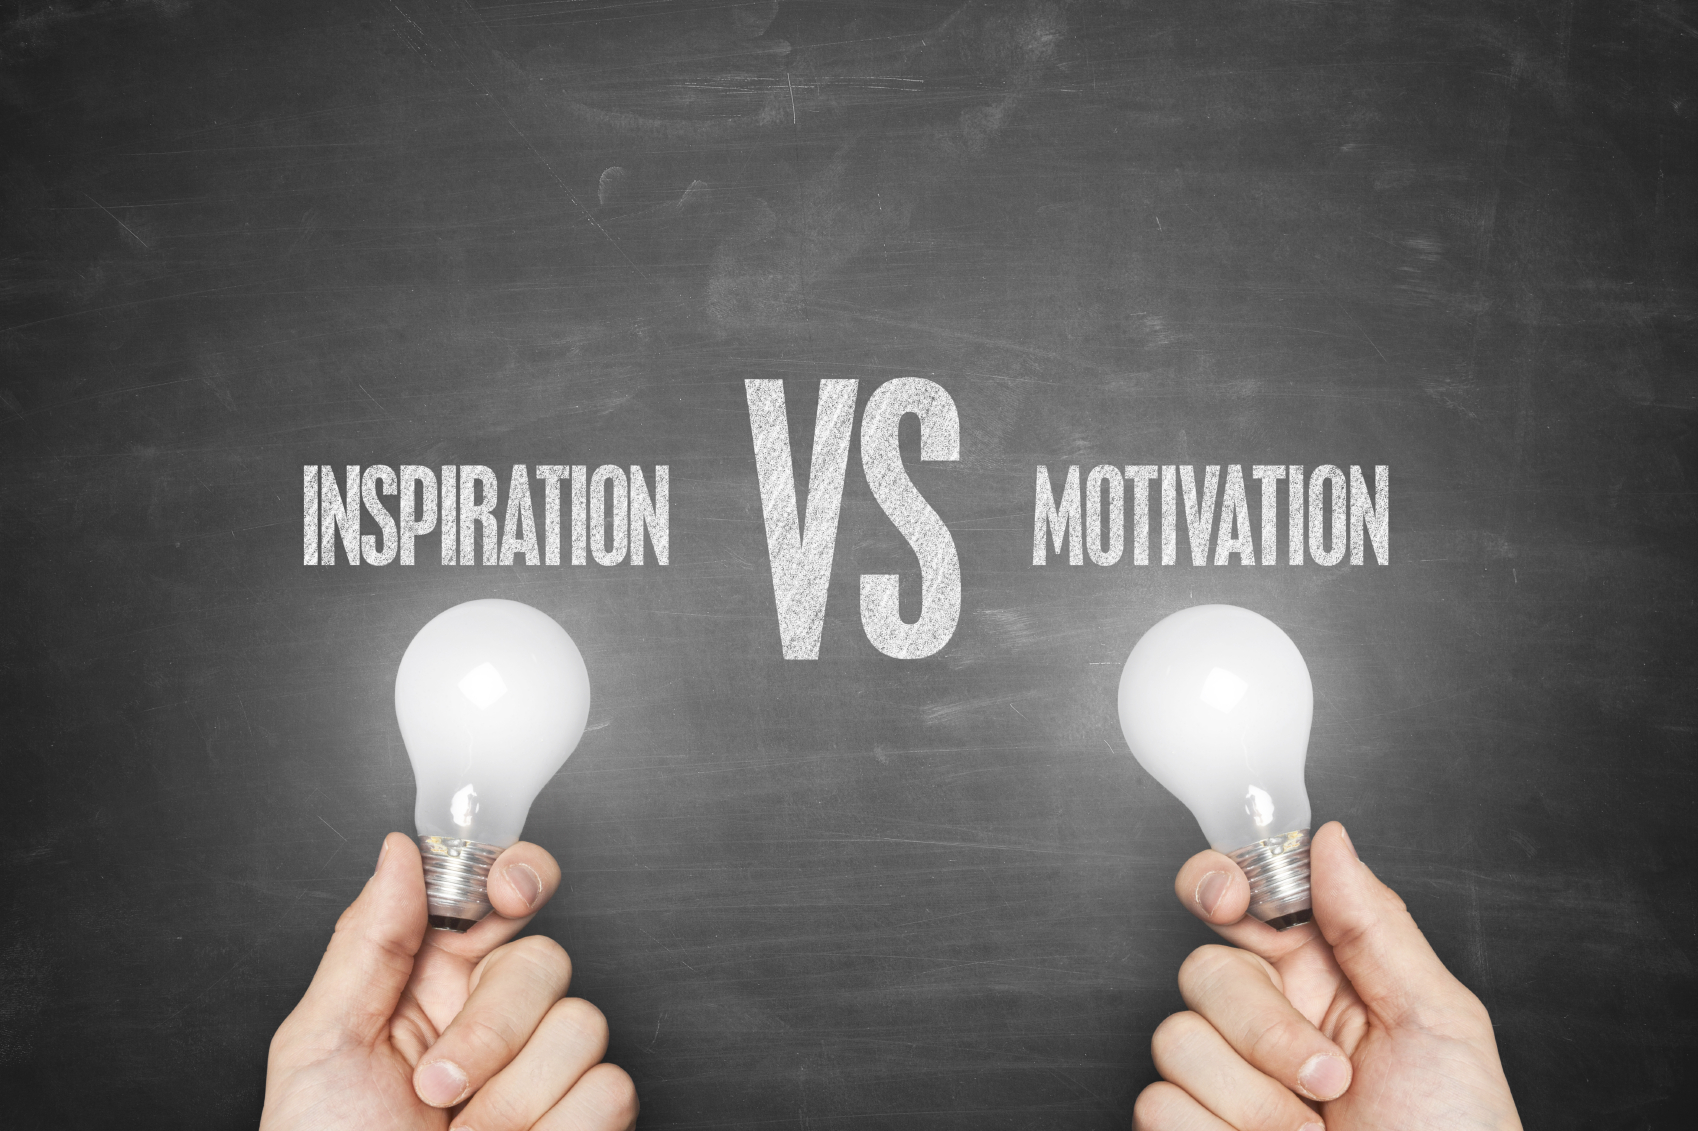 Inspiration-vs-Motivation